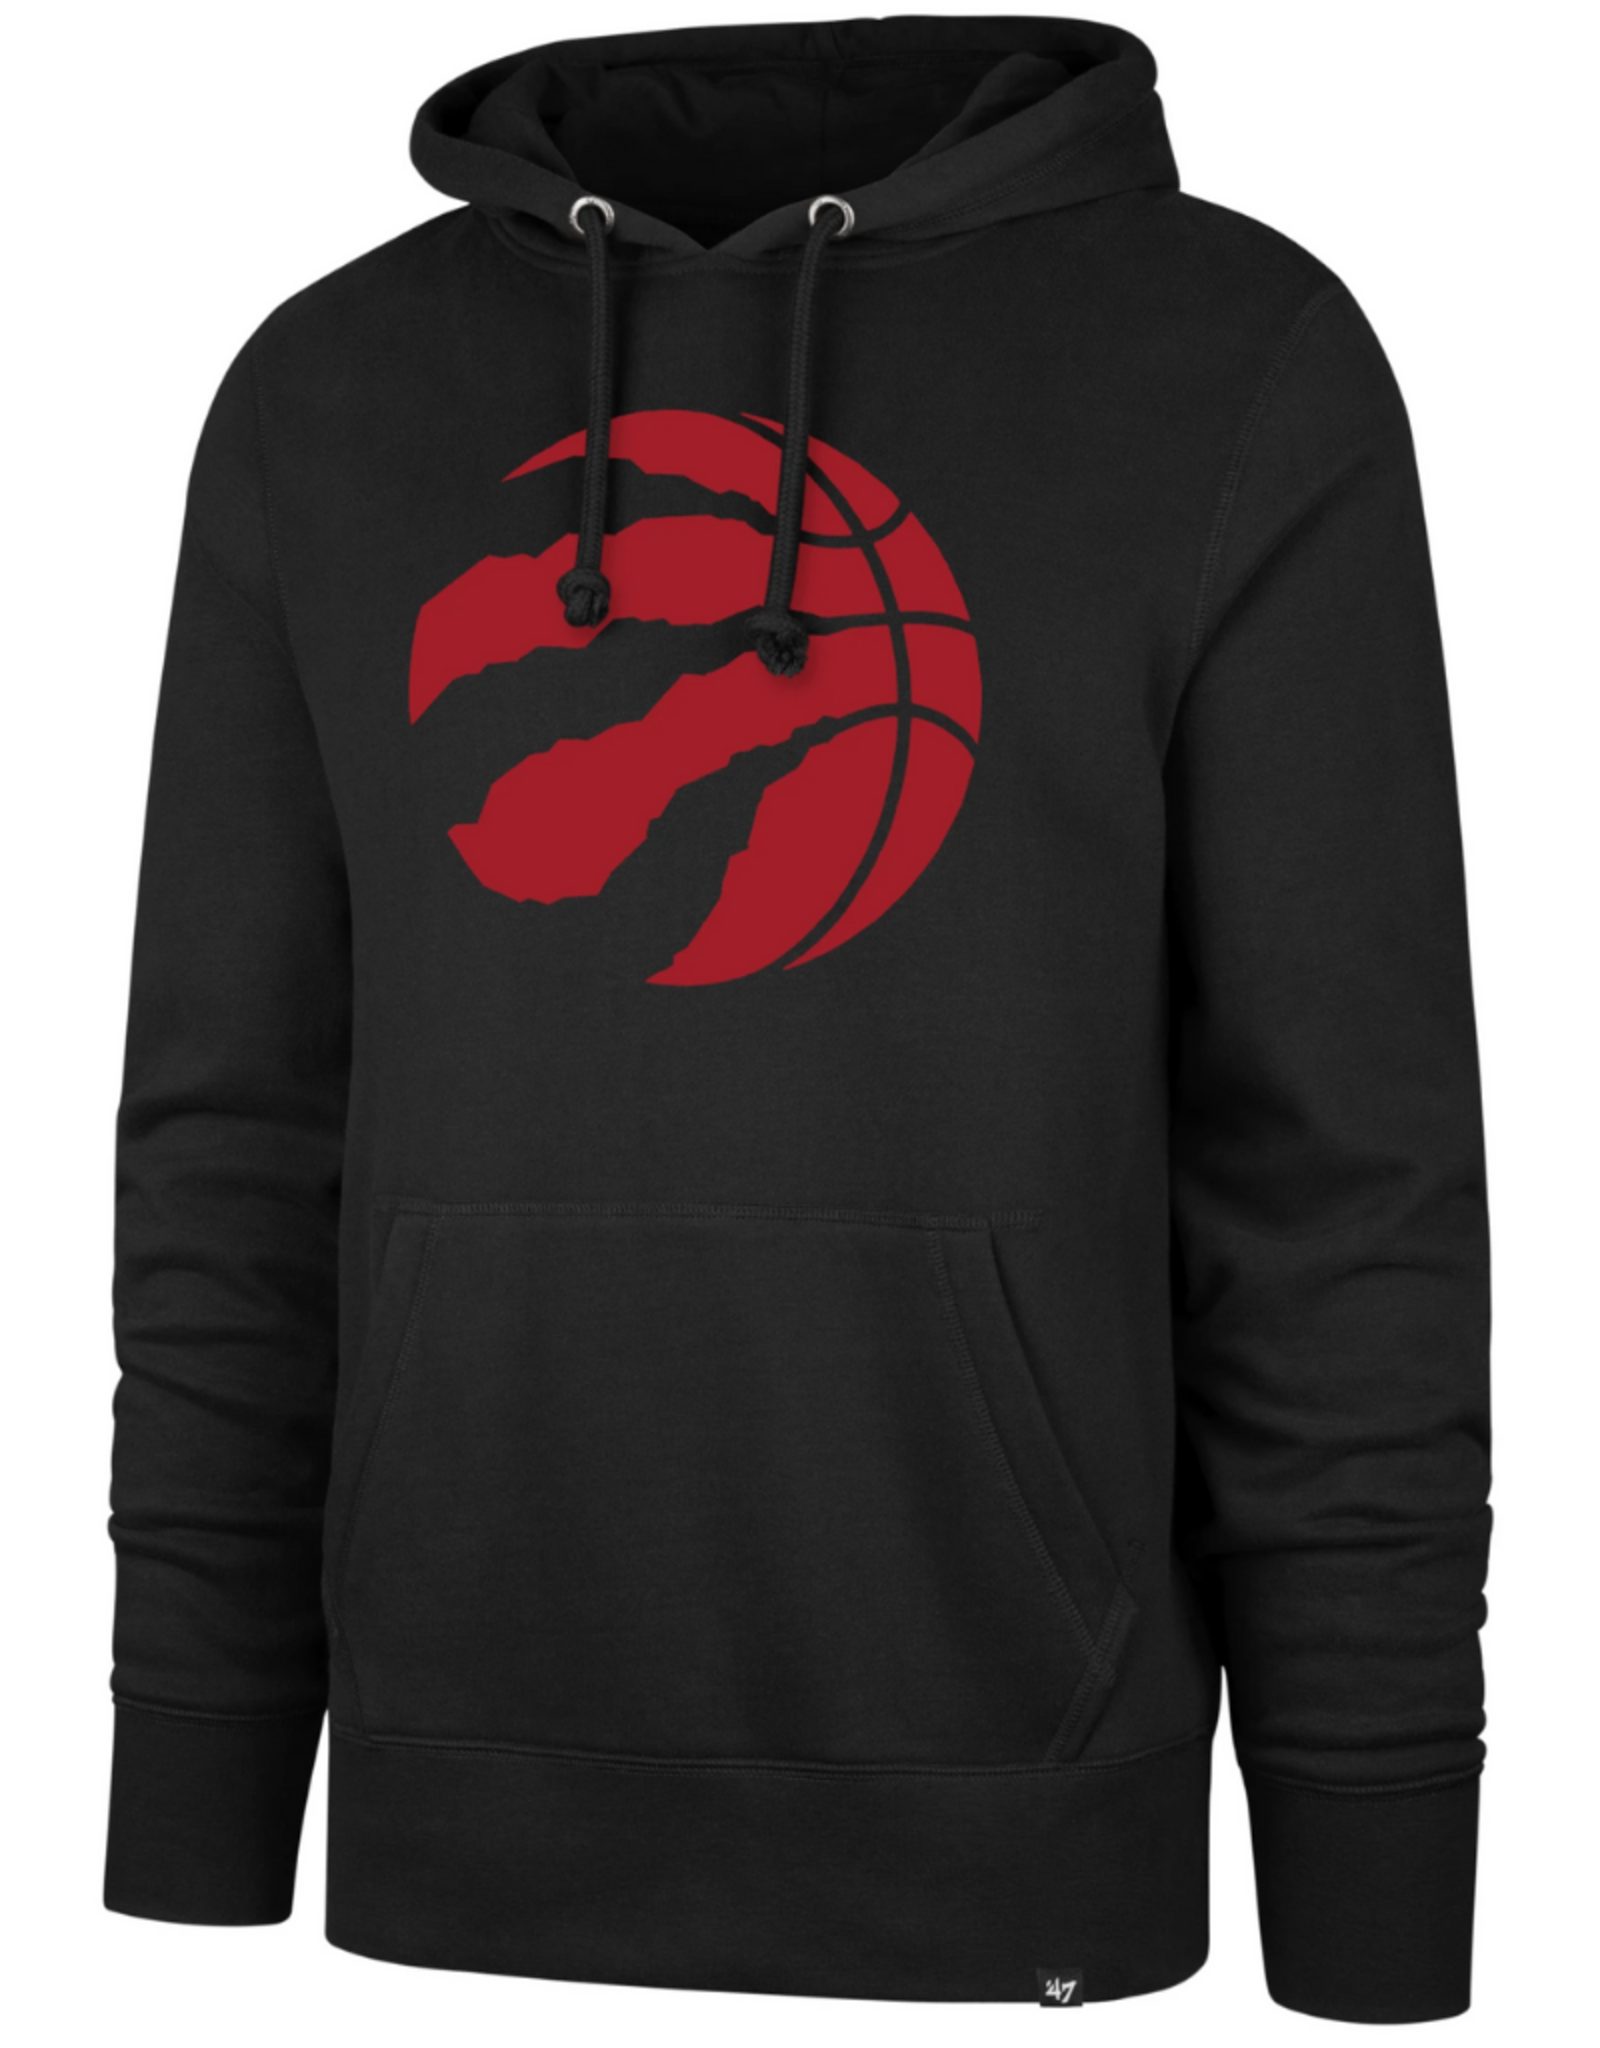 '47 Men's Imprint Headline Logo Hoodie Toronto Raptors Black